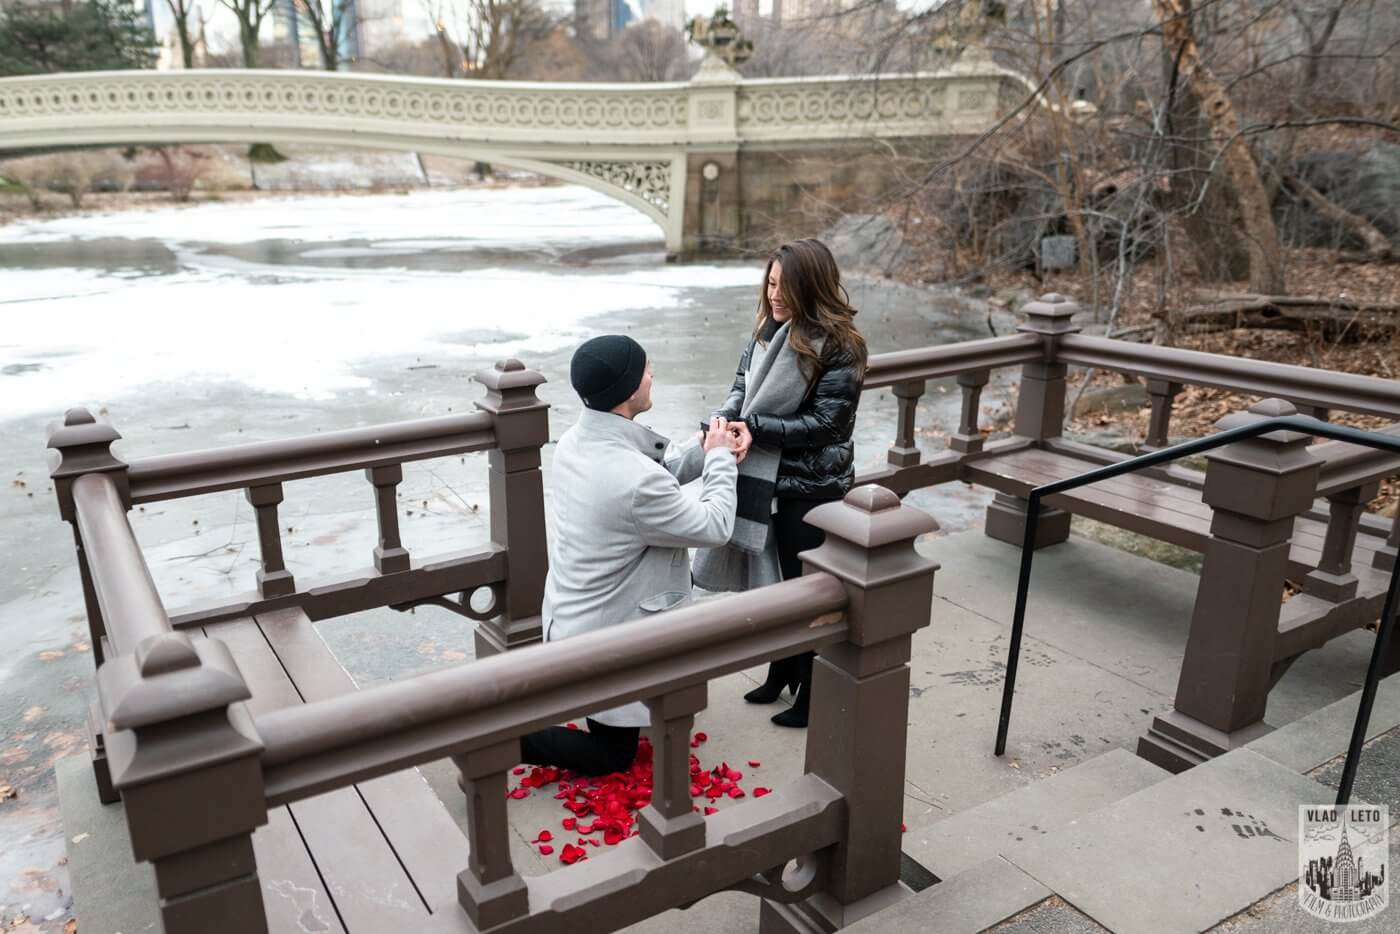 Photo 3 Bow bridge surprise marriage proposal. | VladLeto